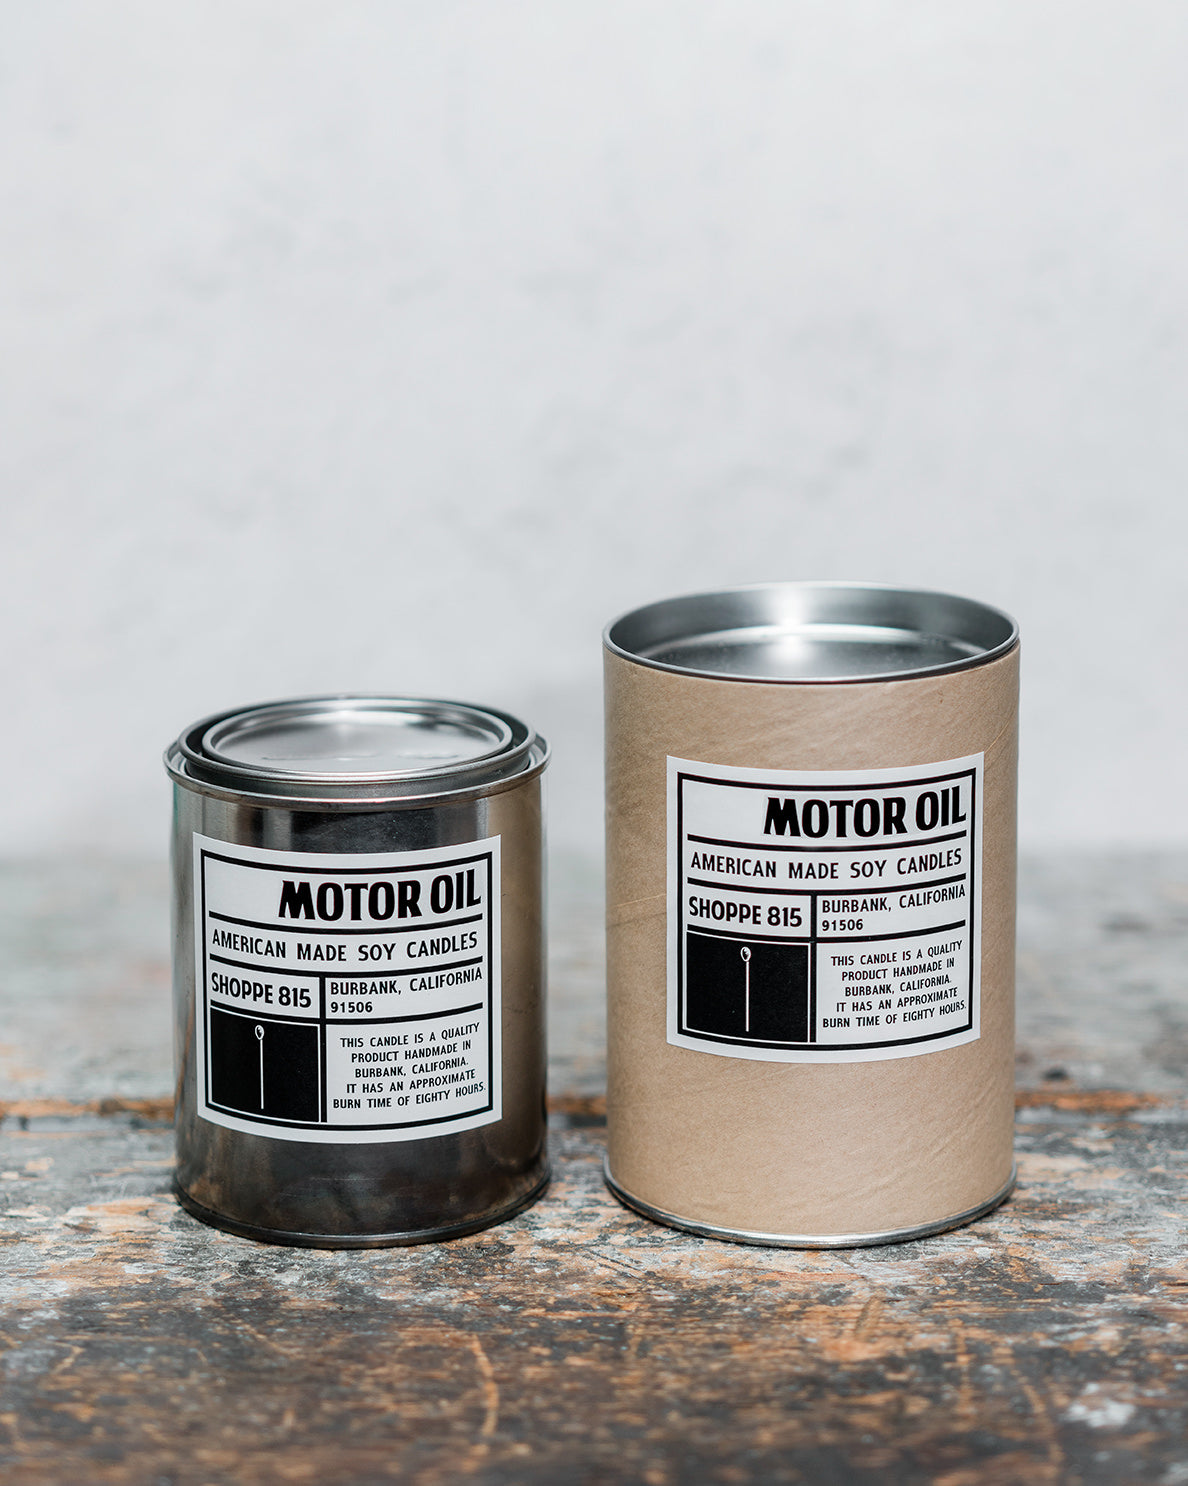 Motor Oil gender neutral tin candle on wooden shelf with packaging